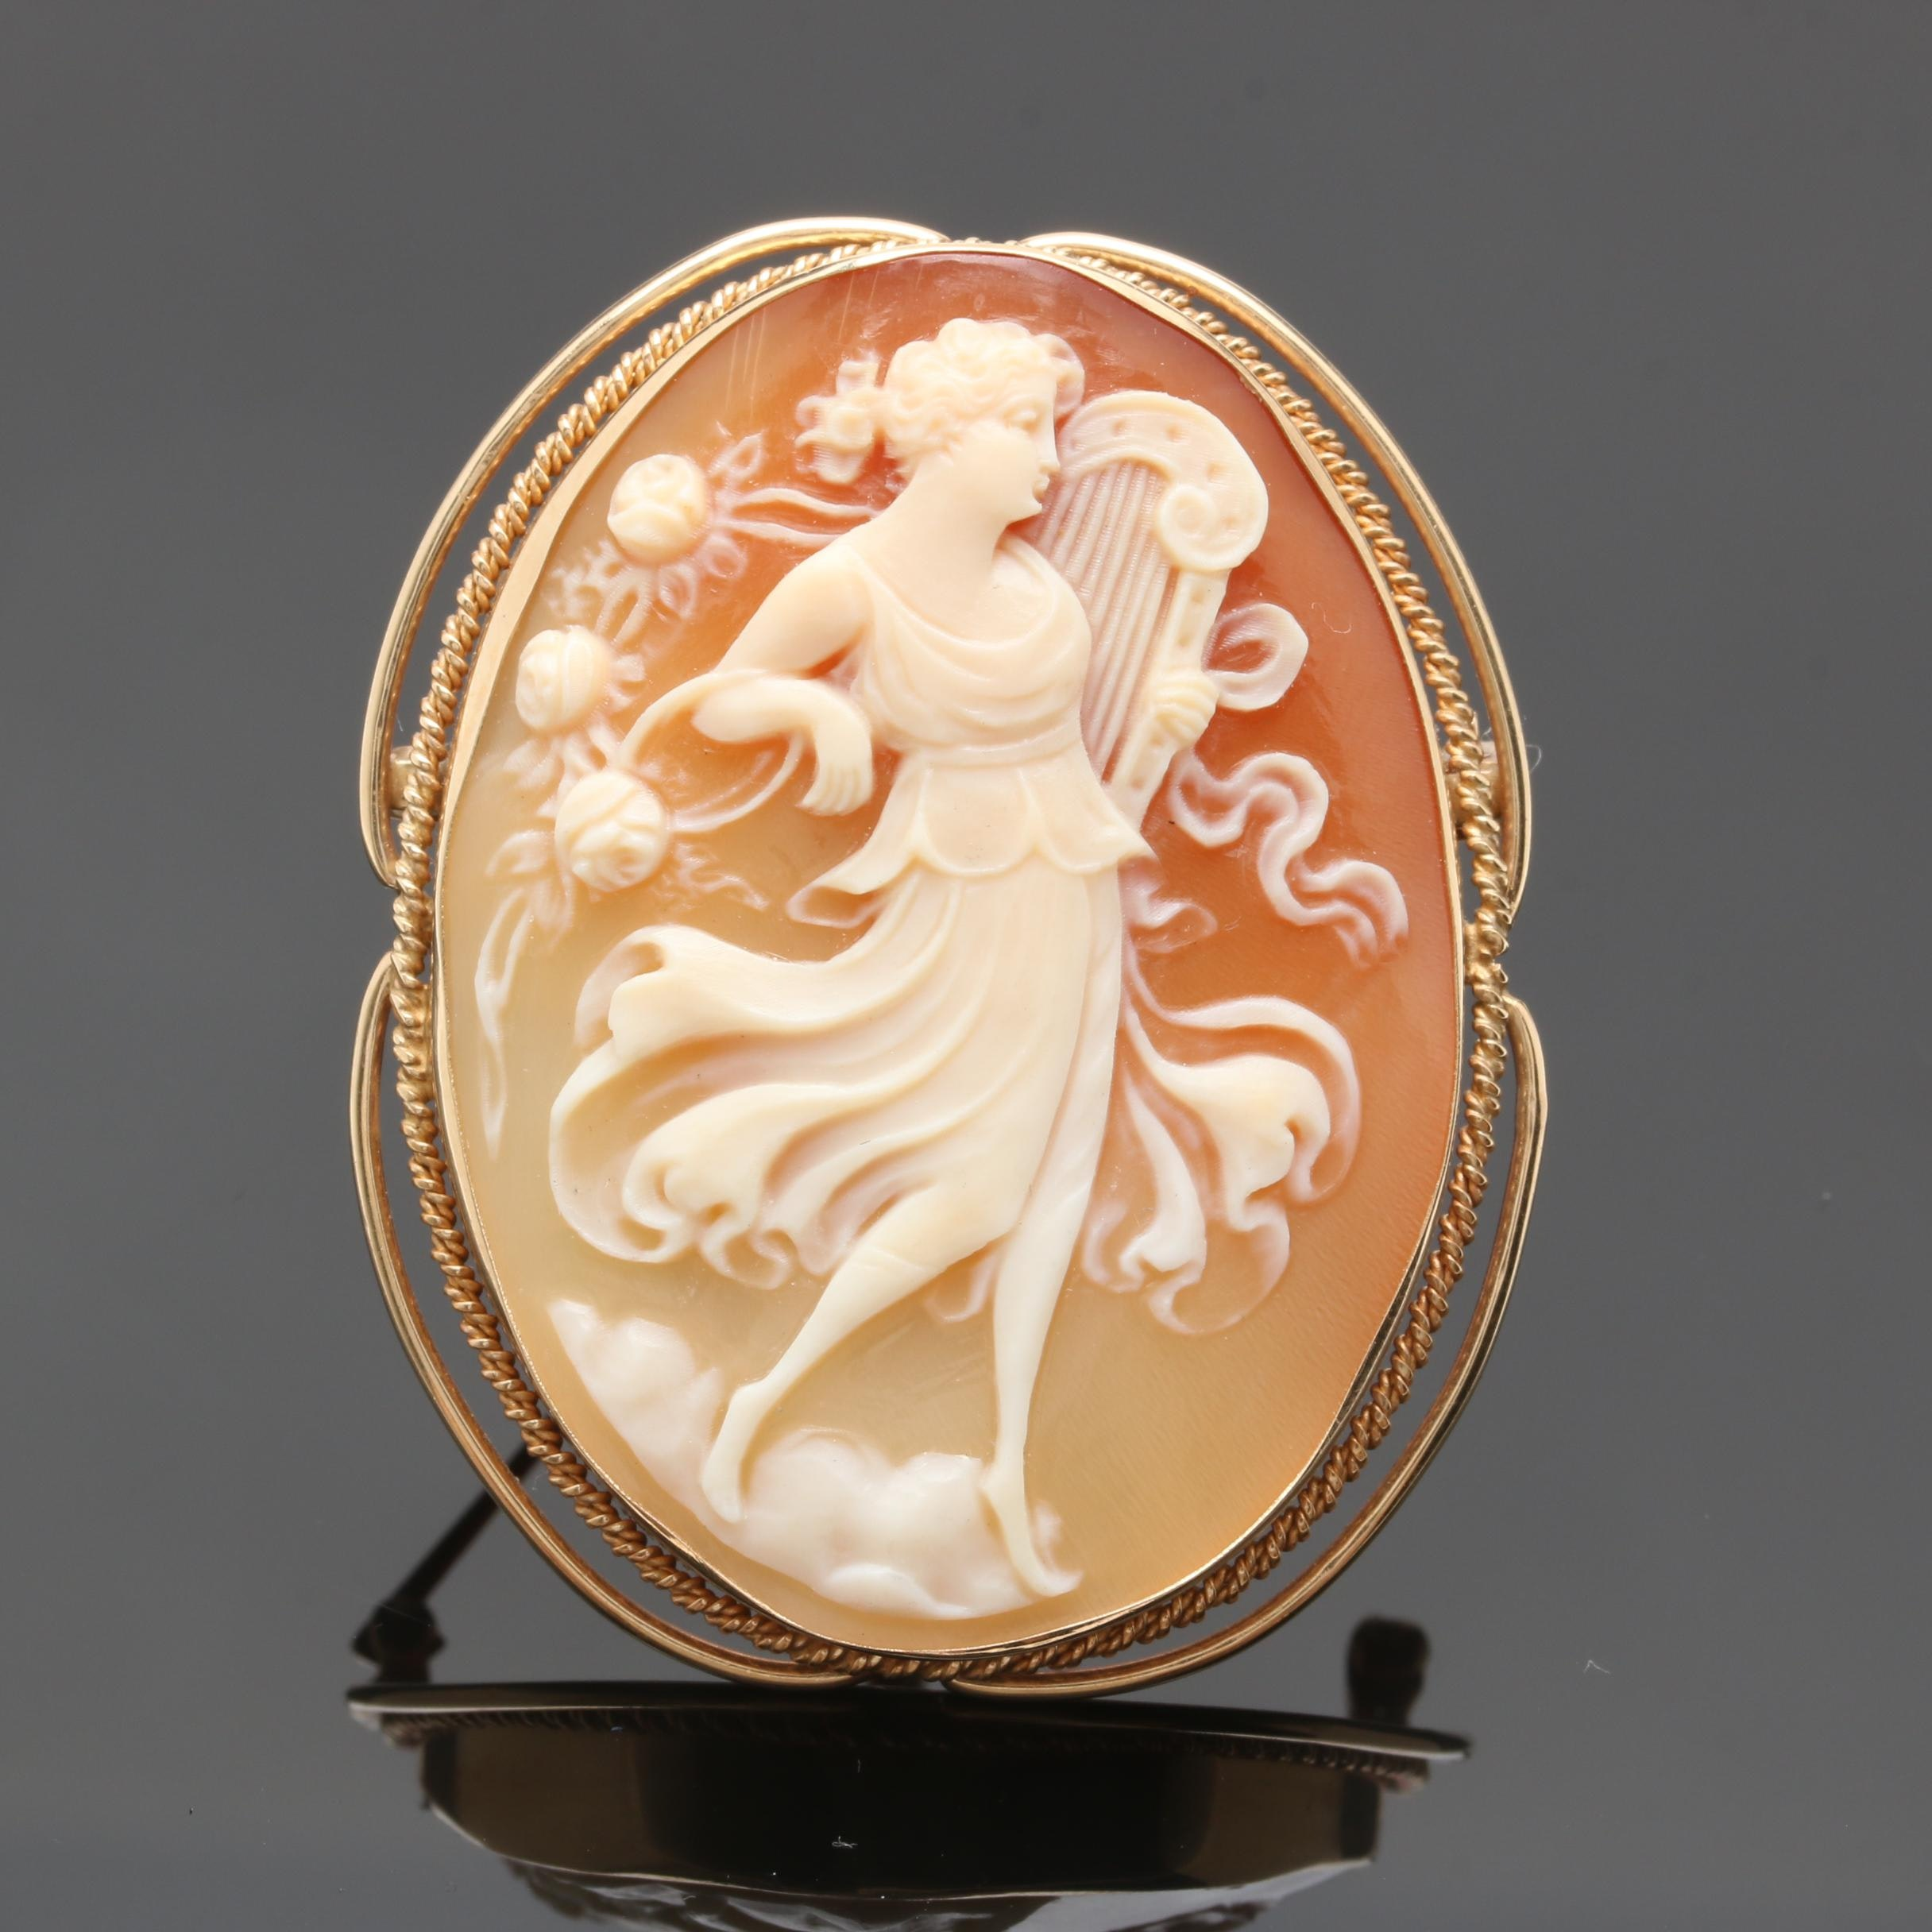 Circa 1950s 14K Yellow Gold Carved Helmet Shell Cameo Converter Brooch